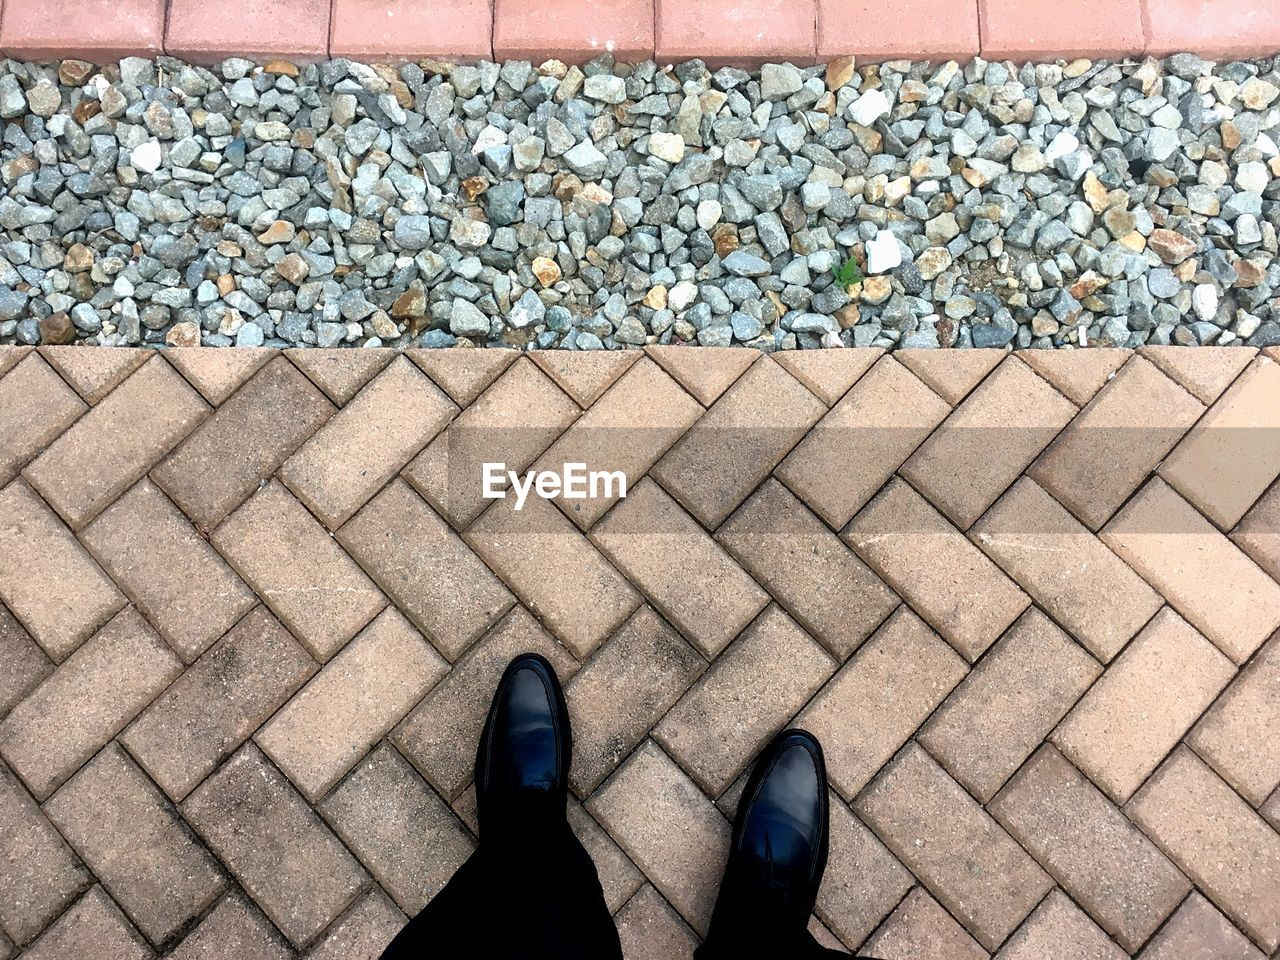 high angle view, low section, shoe, body part, stone - object, human leg, human body part, day, solid, stone, standing, personal perspective, large group of objects, one person, footpath, real people, abundance, pattern, nature, outdoors, pebble, human foot, paving stone, gravel, human limb